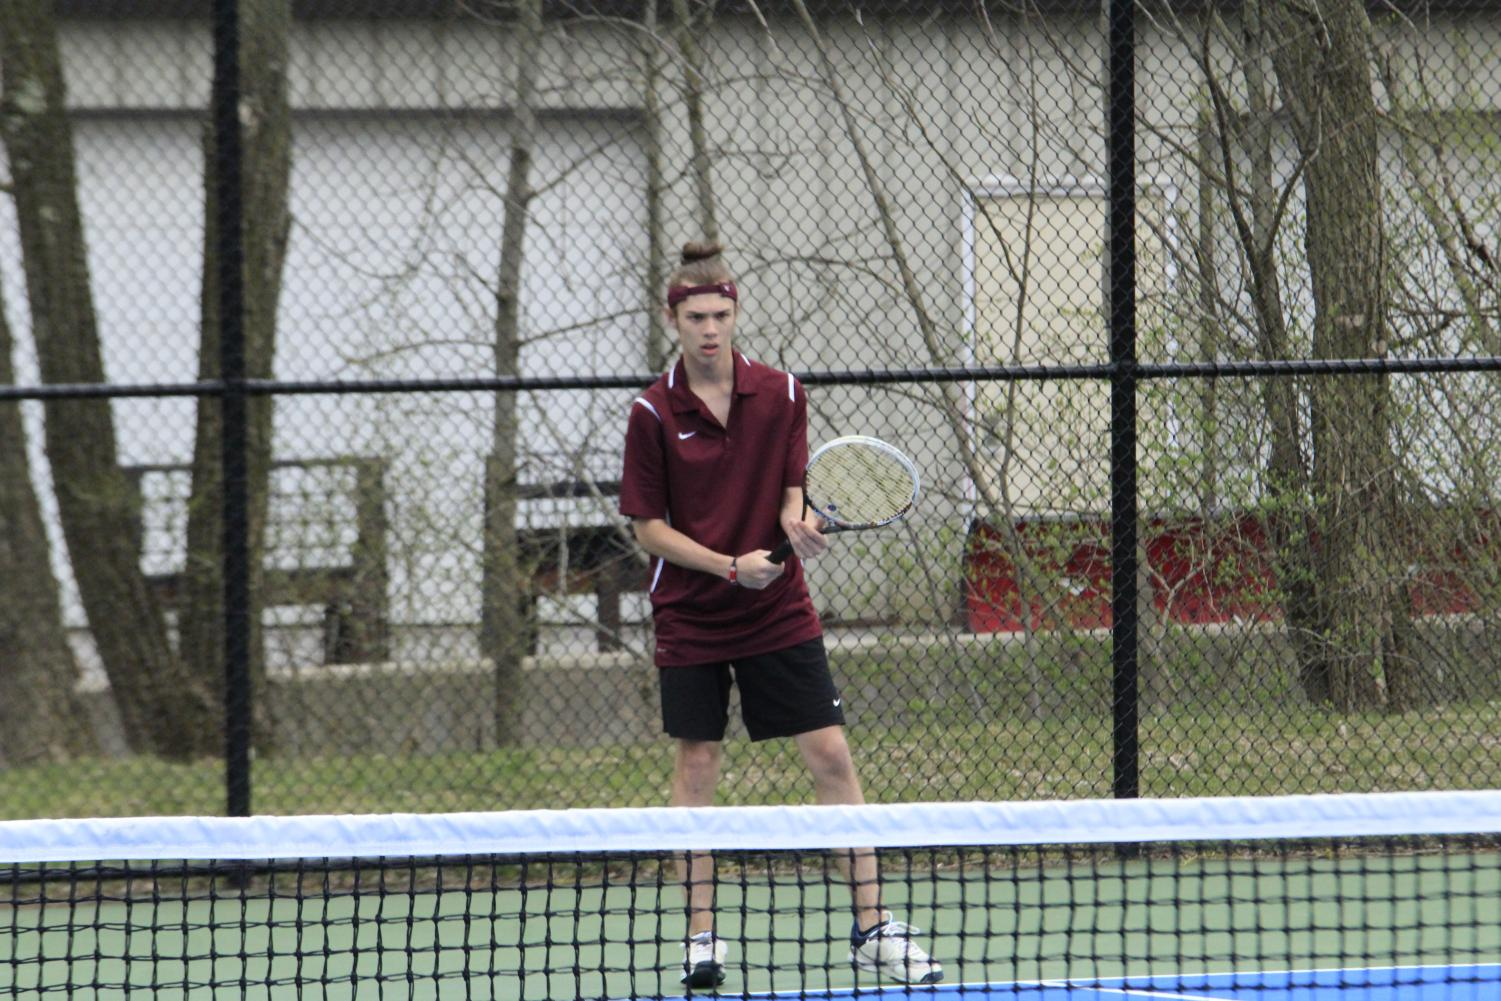 Michael+Shiminger+waits+for++his+opponent+to+serve+the+ball.++